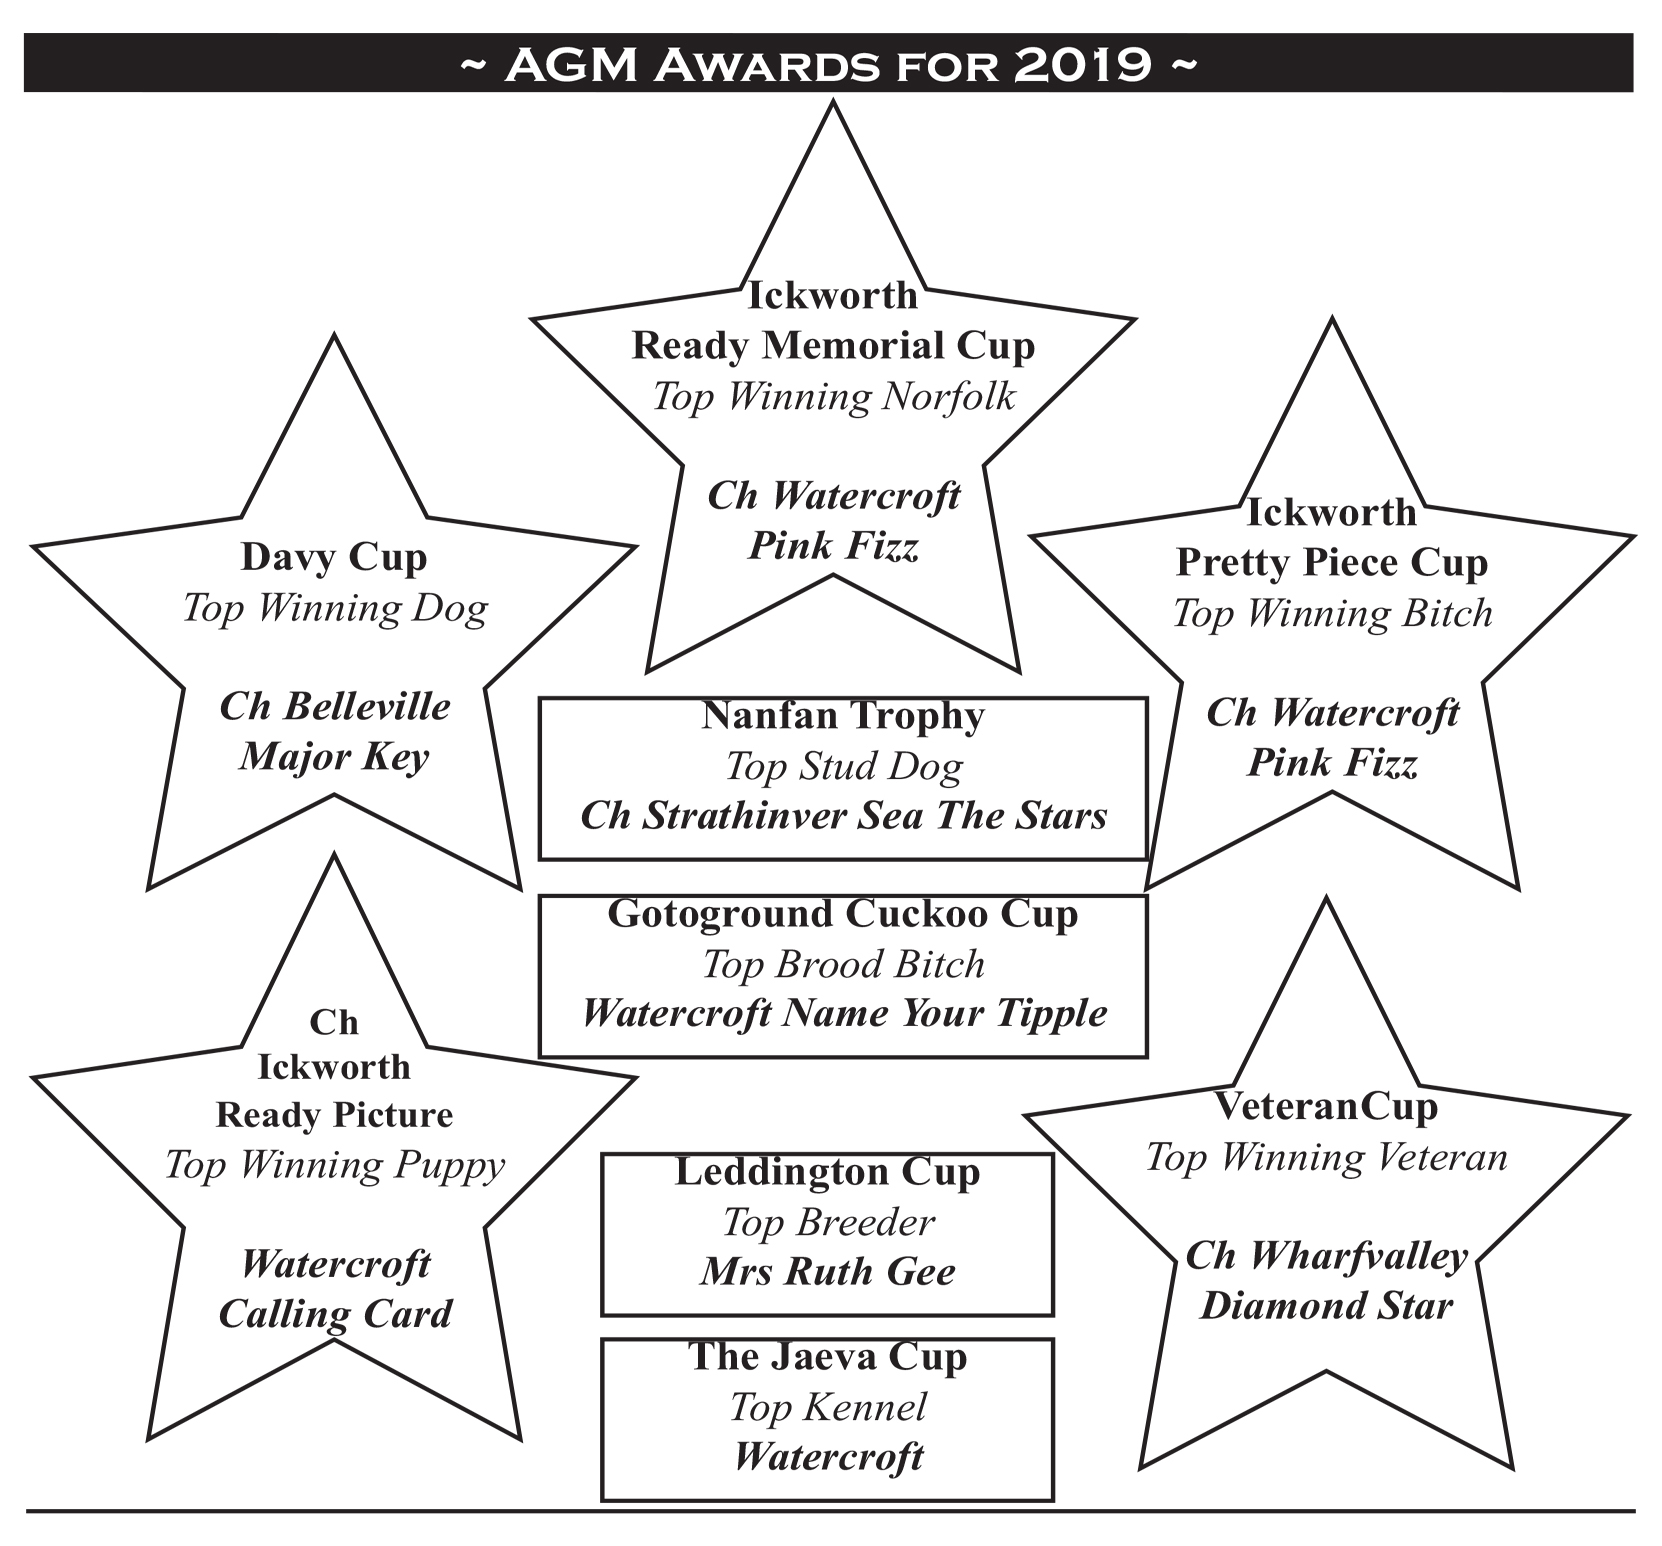 AGM Awards 2019/20